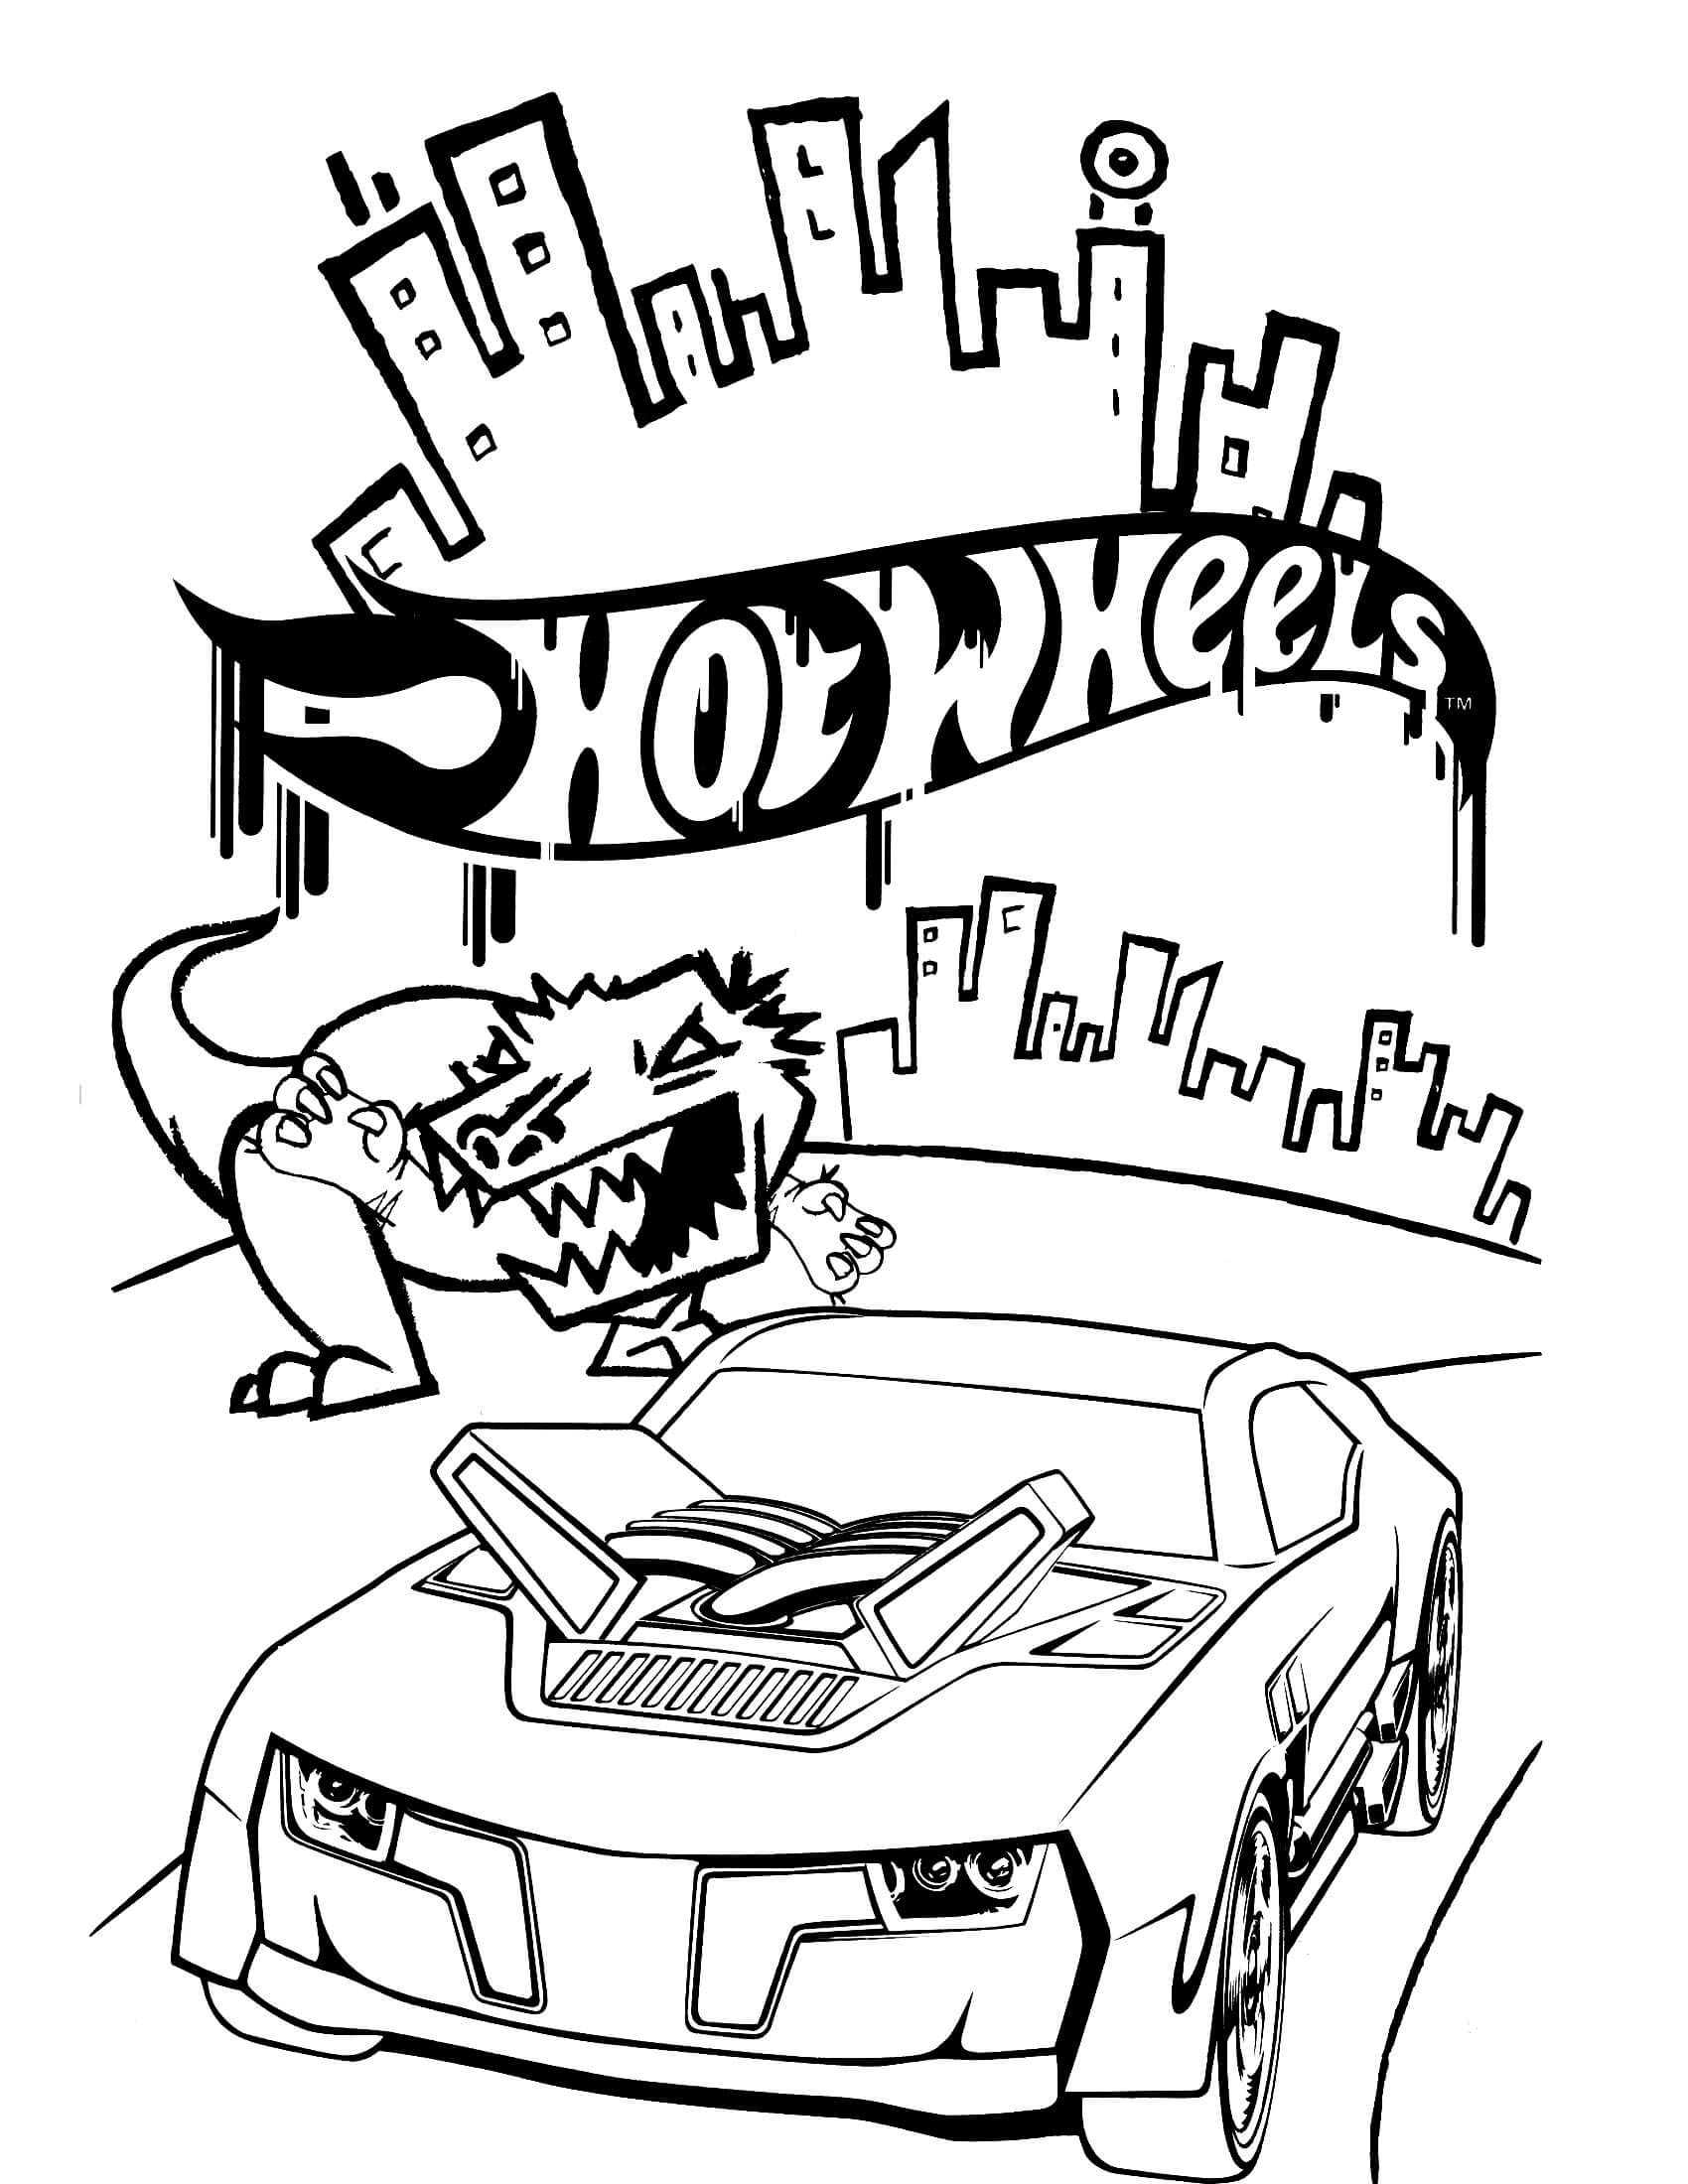 Hot wheels coloring page hot wheels pinterest wheels